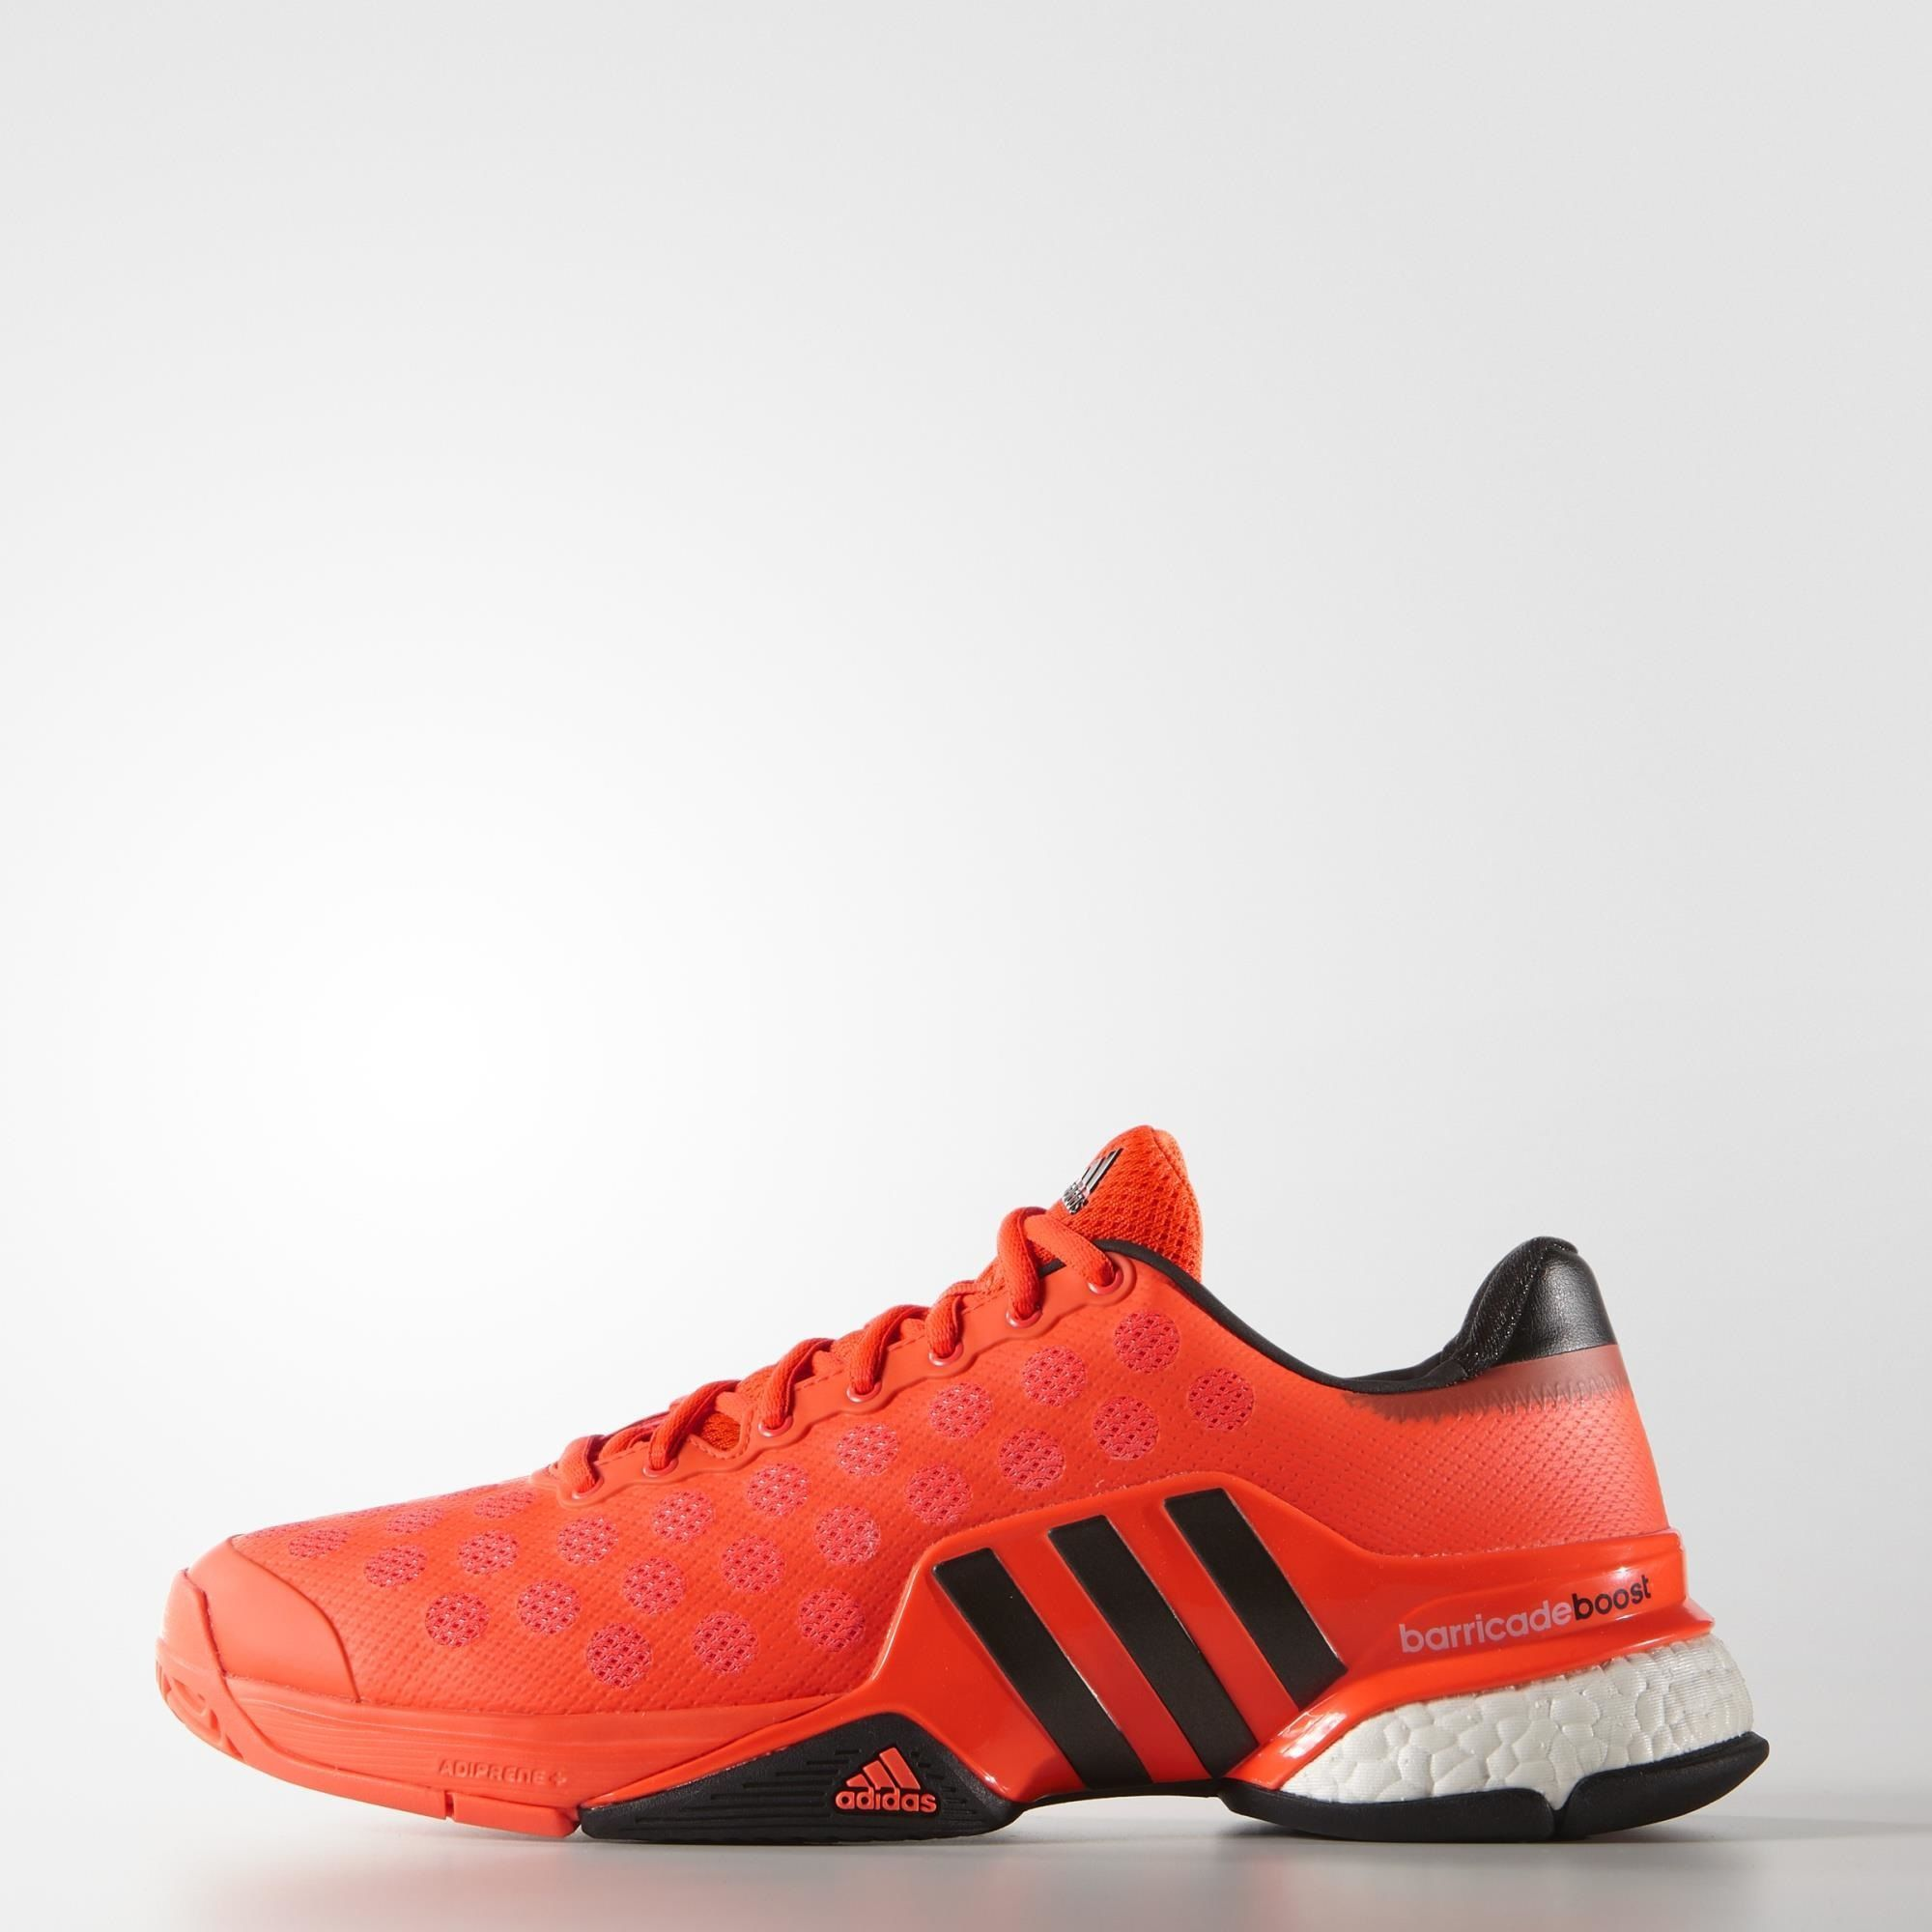 ADIDAS Originals ZX Flux MENS SNEAKERS RED C BLACK FTW WHITEM Nike USA TrainersAuthentic